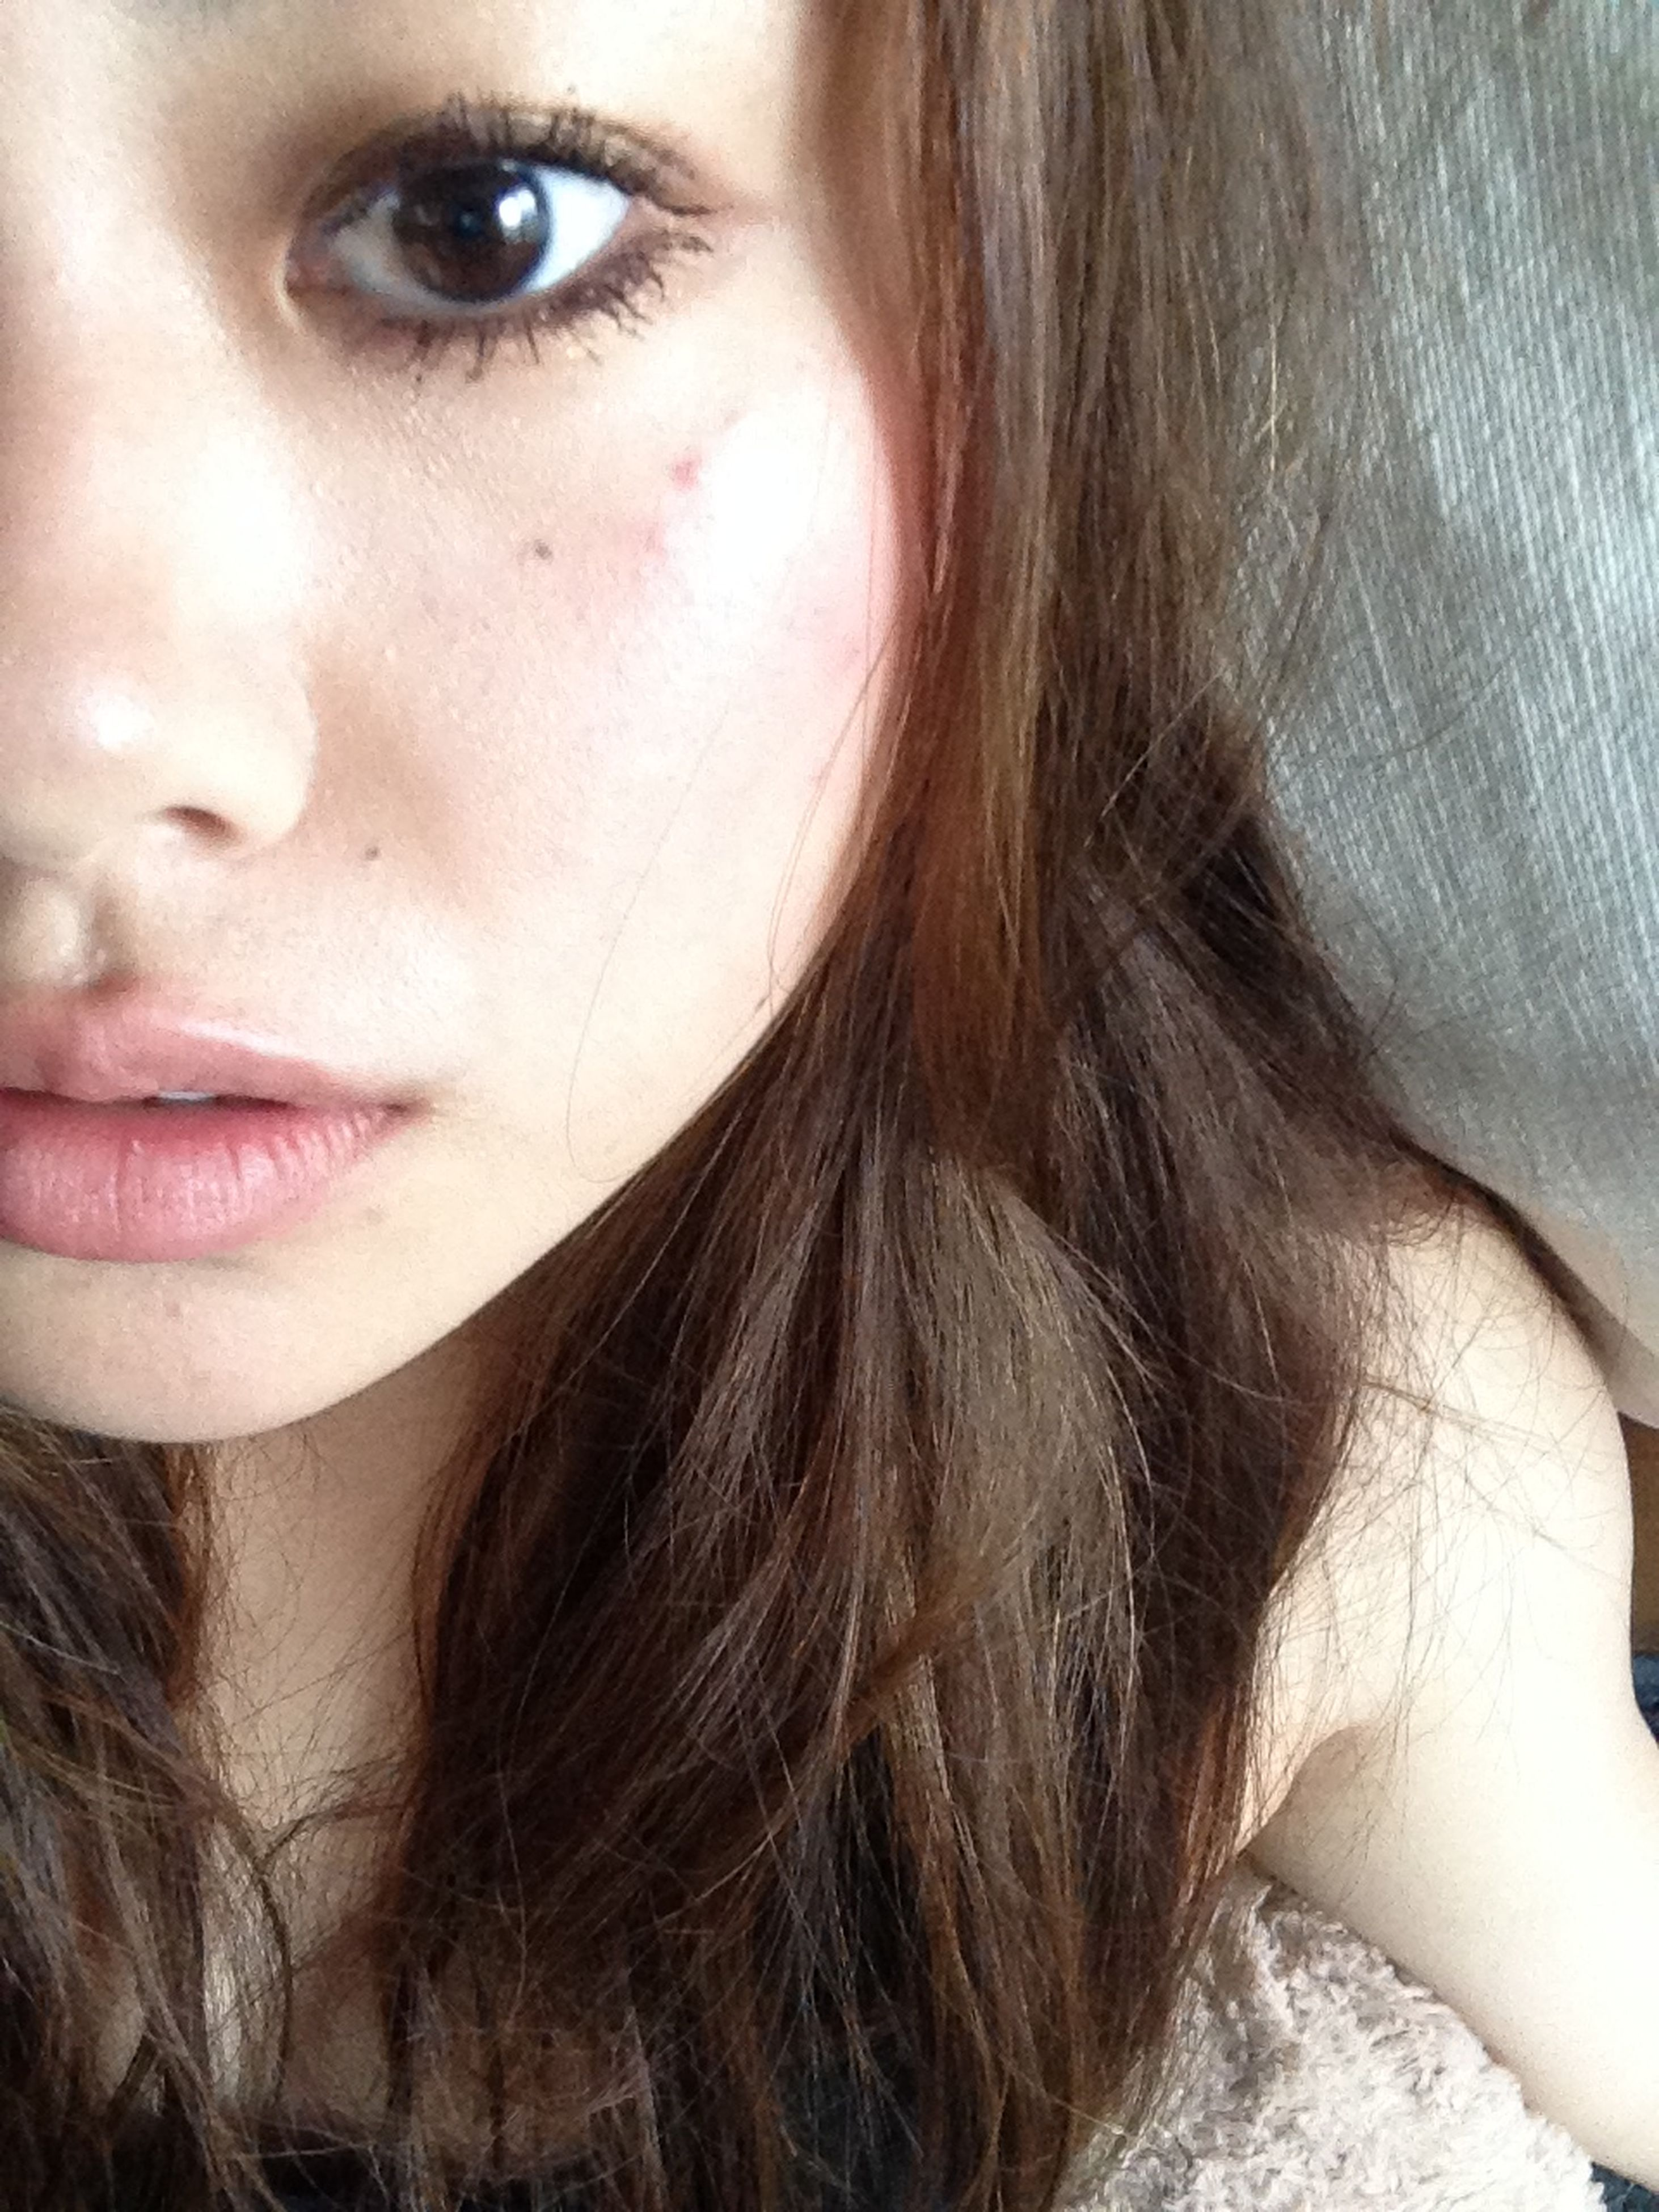 close-up, lifestyles, headshot, human face, part of, leisure activity, person, young women, young adult, human skin, human eye, cropped, human hair, indoors, focus on foreground